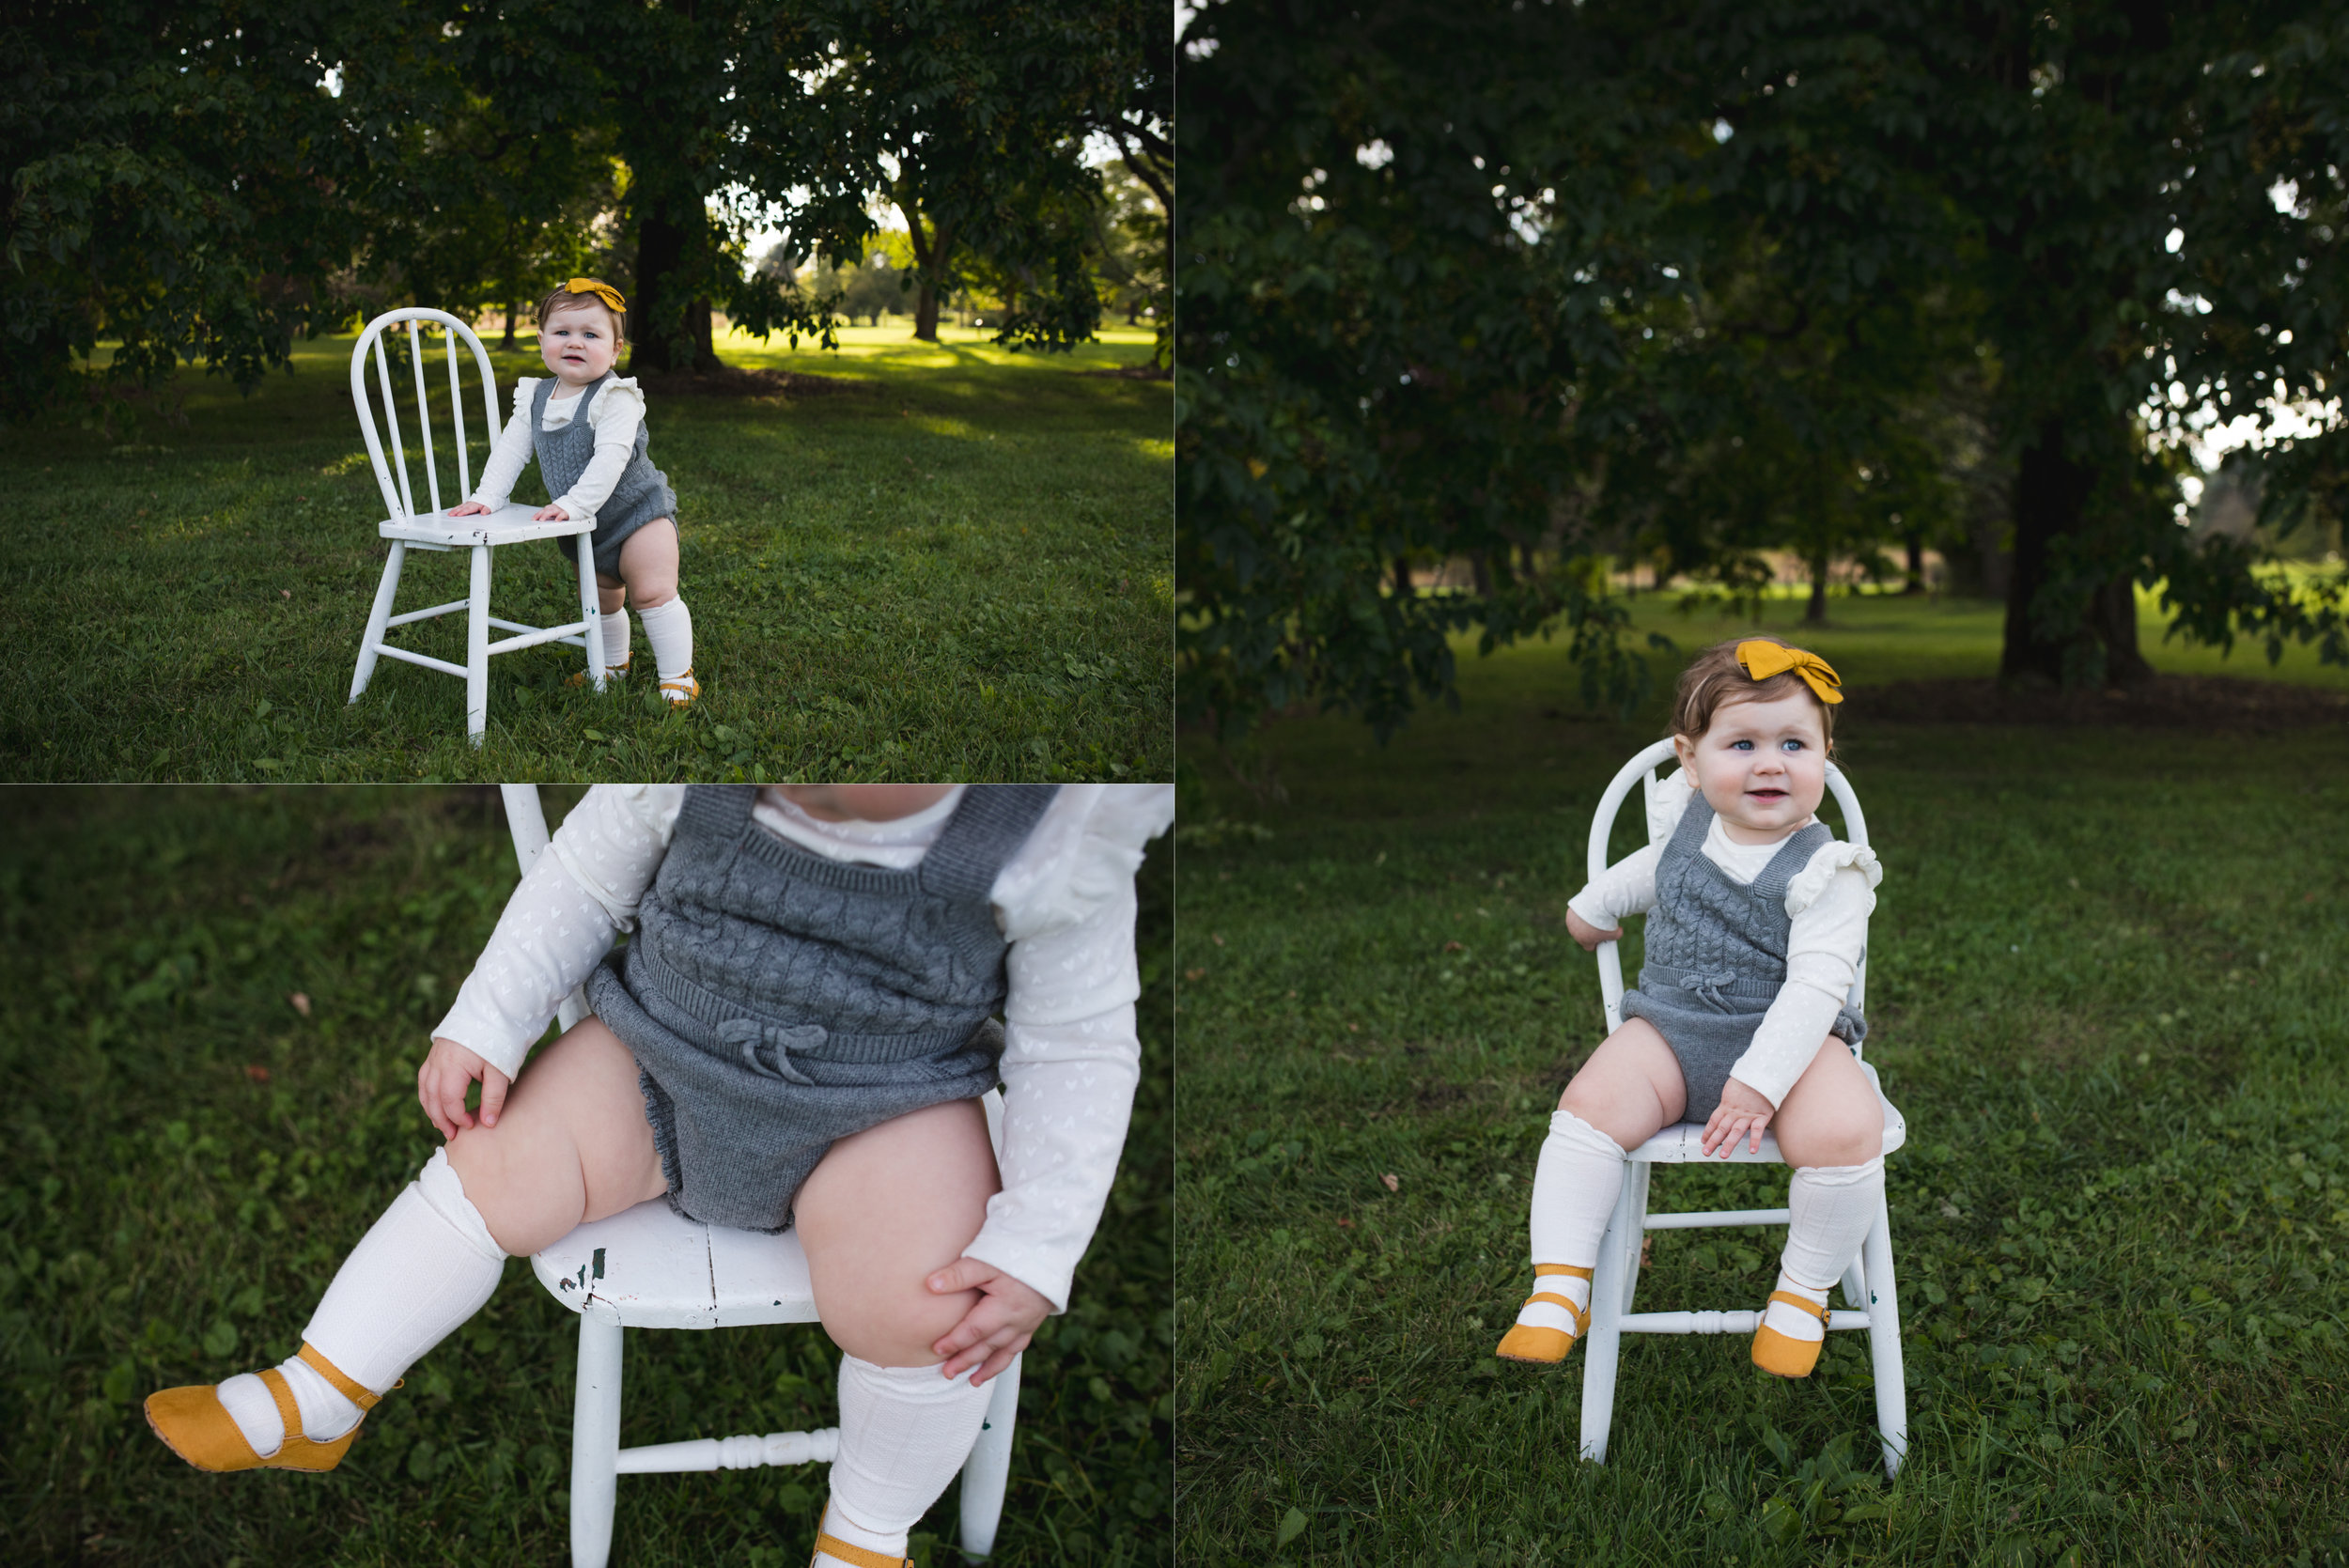 One year old baby girl sitting and standing by a white wooden chair during her one year old photo session at Morgan Creek Arboretum in Palo, Iowa.